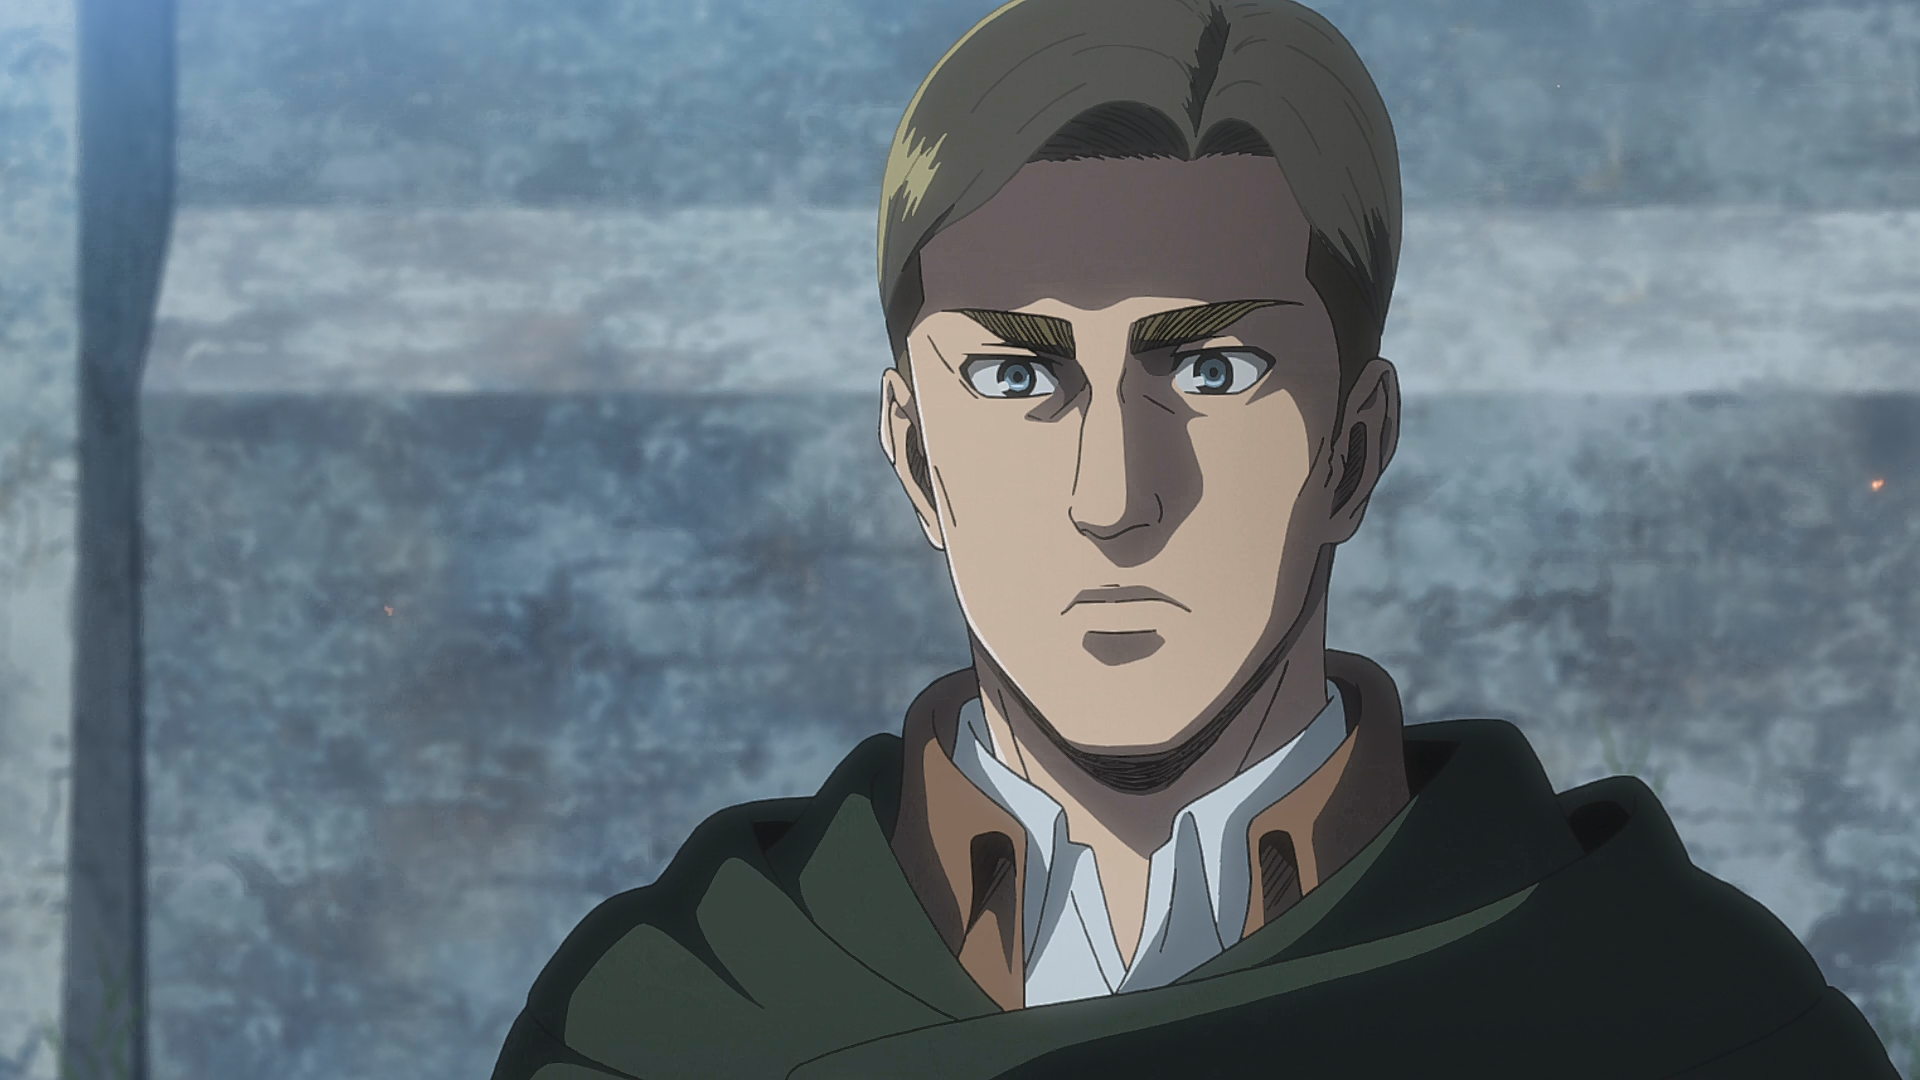 c6d5aa9f Perfect Game (Episode) | Attack on Titan Wiki | FANDOM powered by Wikia